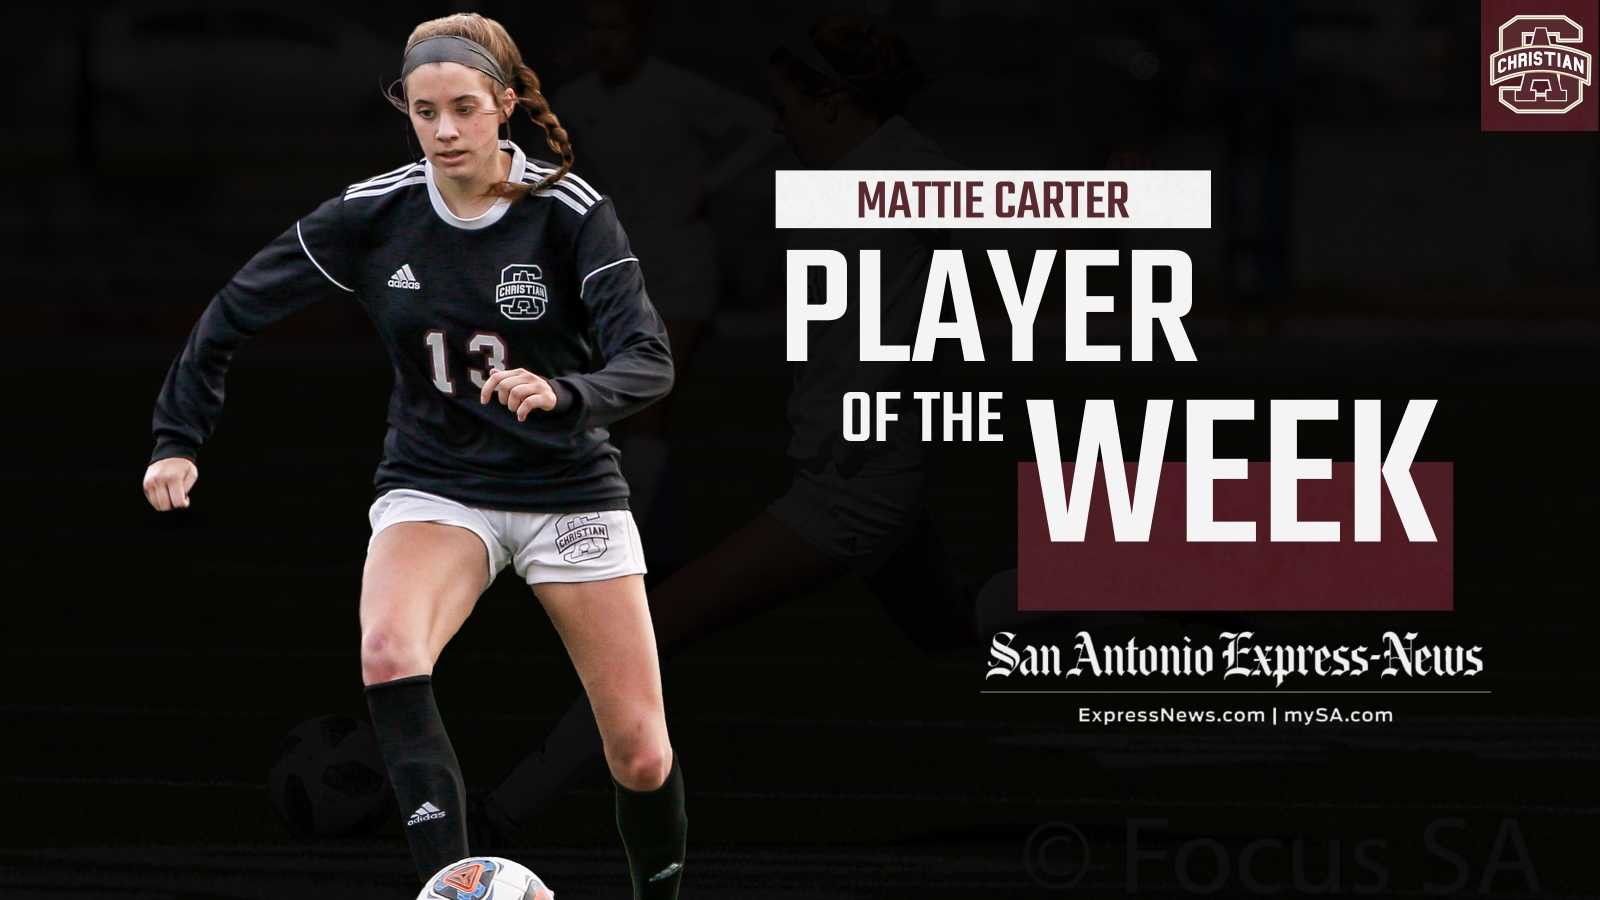 Player of the Week!